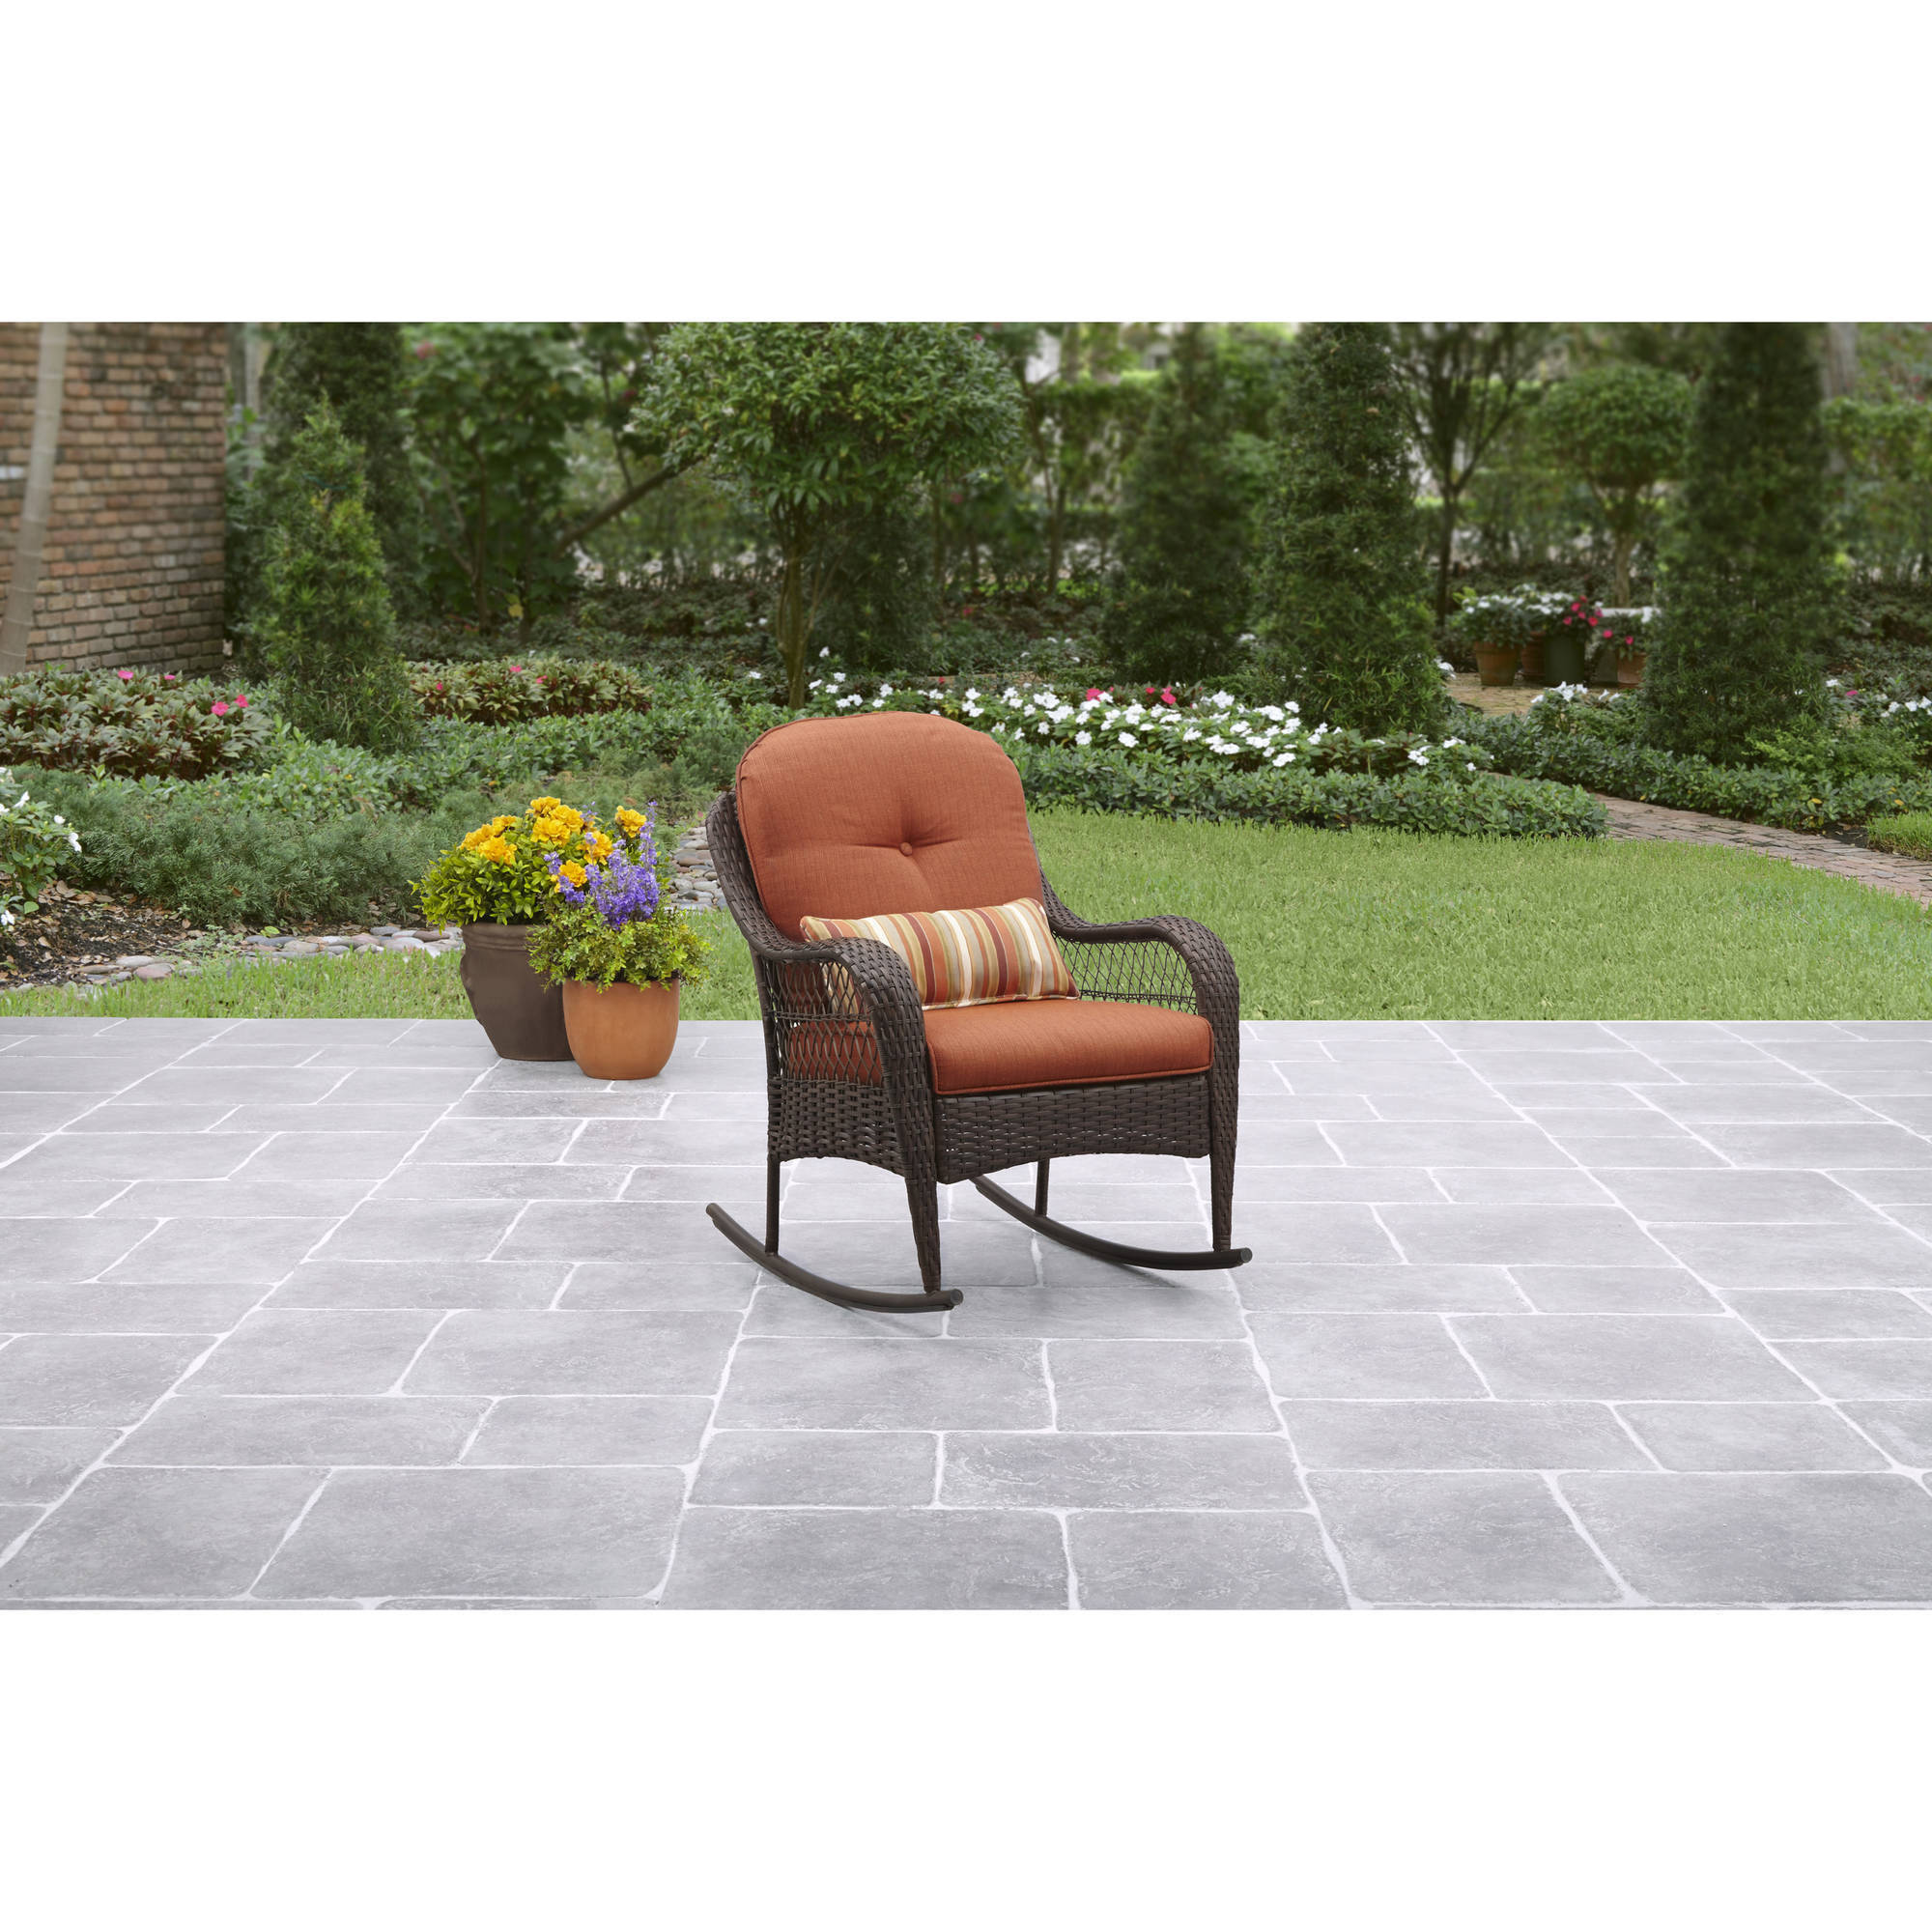 Fresh where to Buy Patio Furniture Near Me